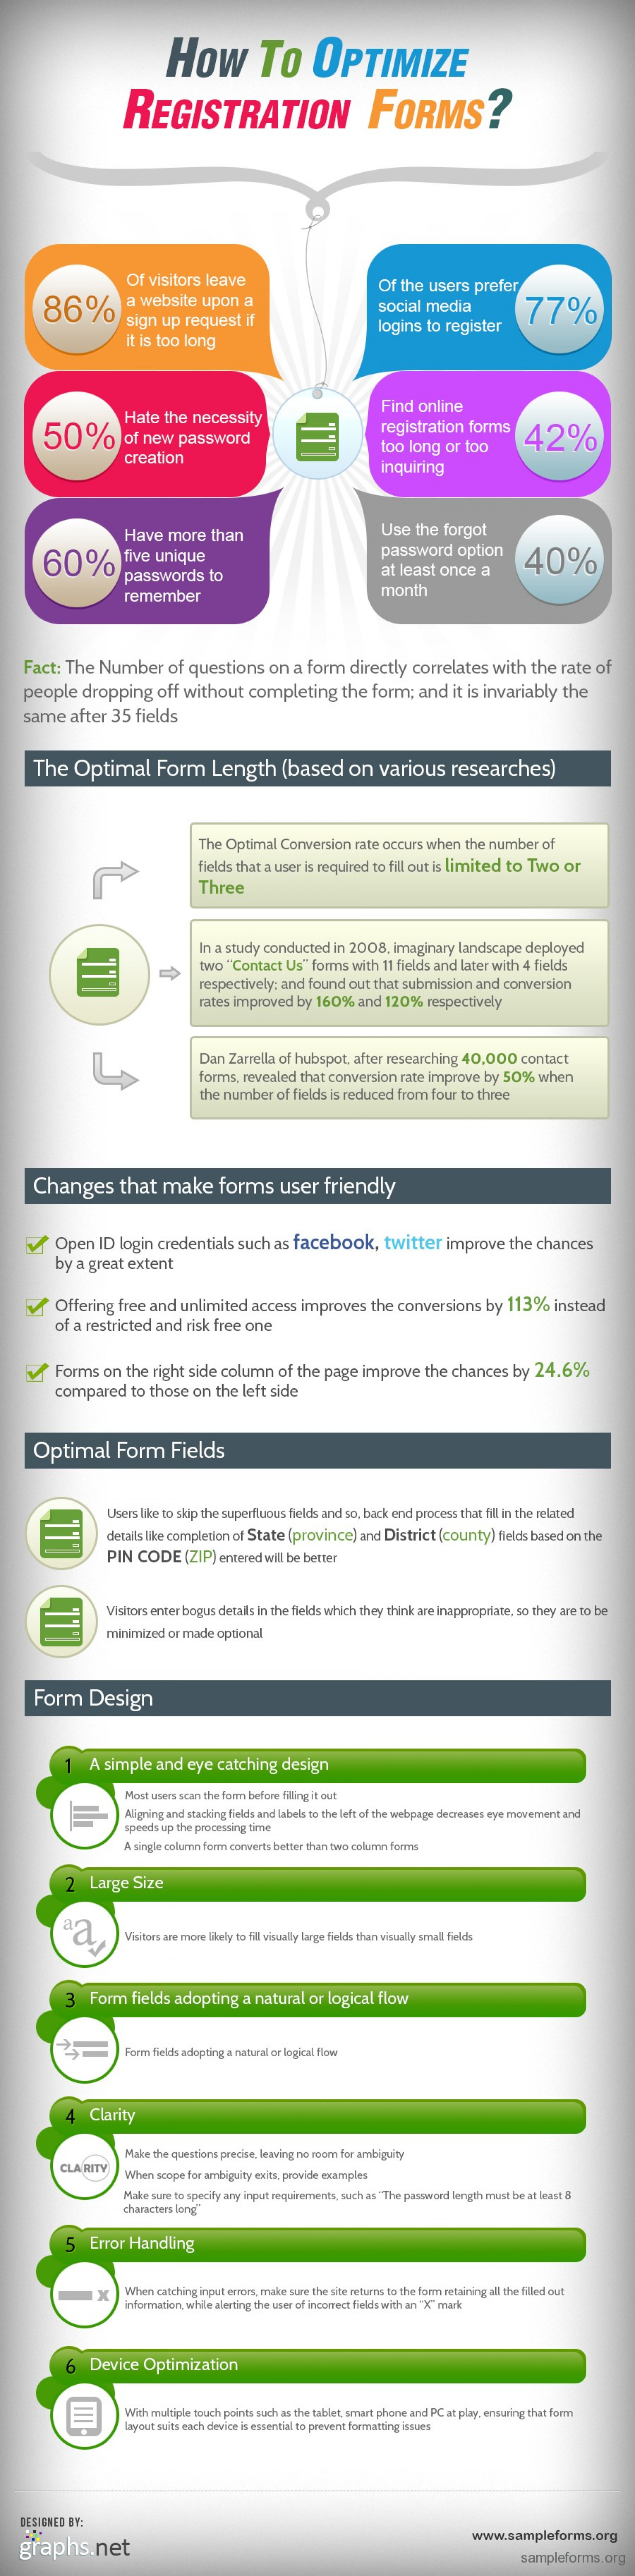 How to optimize registration forms? Infographic